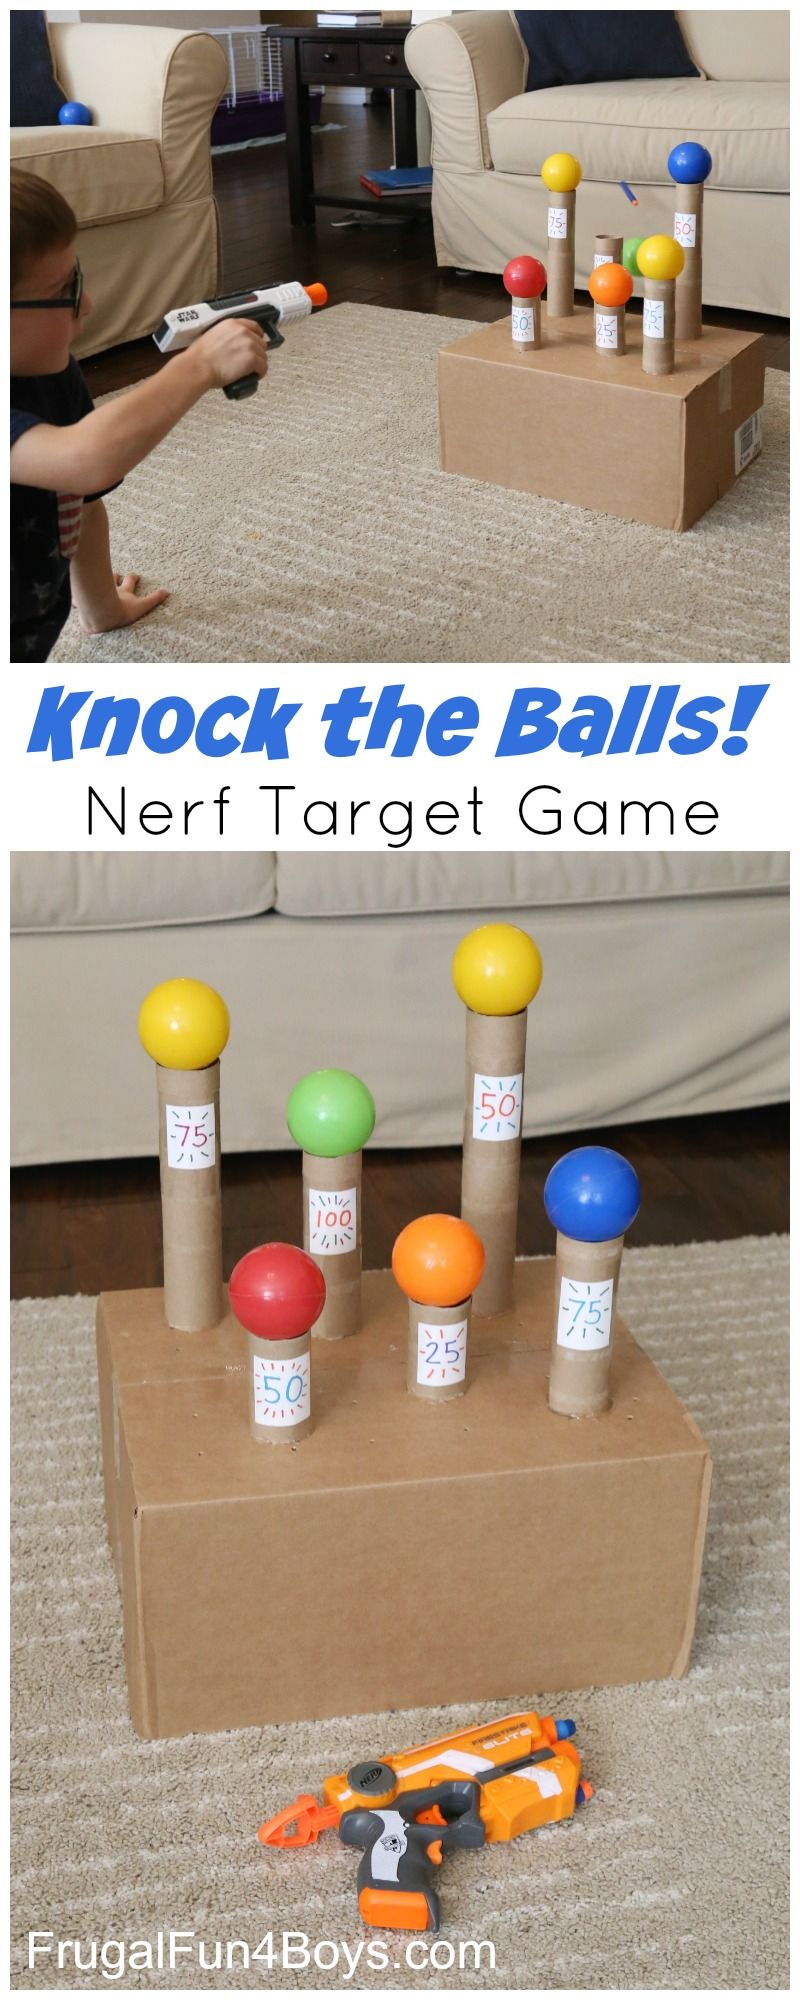 Knock the balls down nerf target game boredom busters target kid activities negle Choice Image